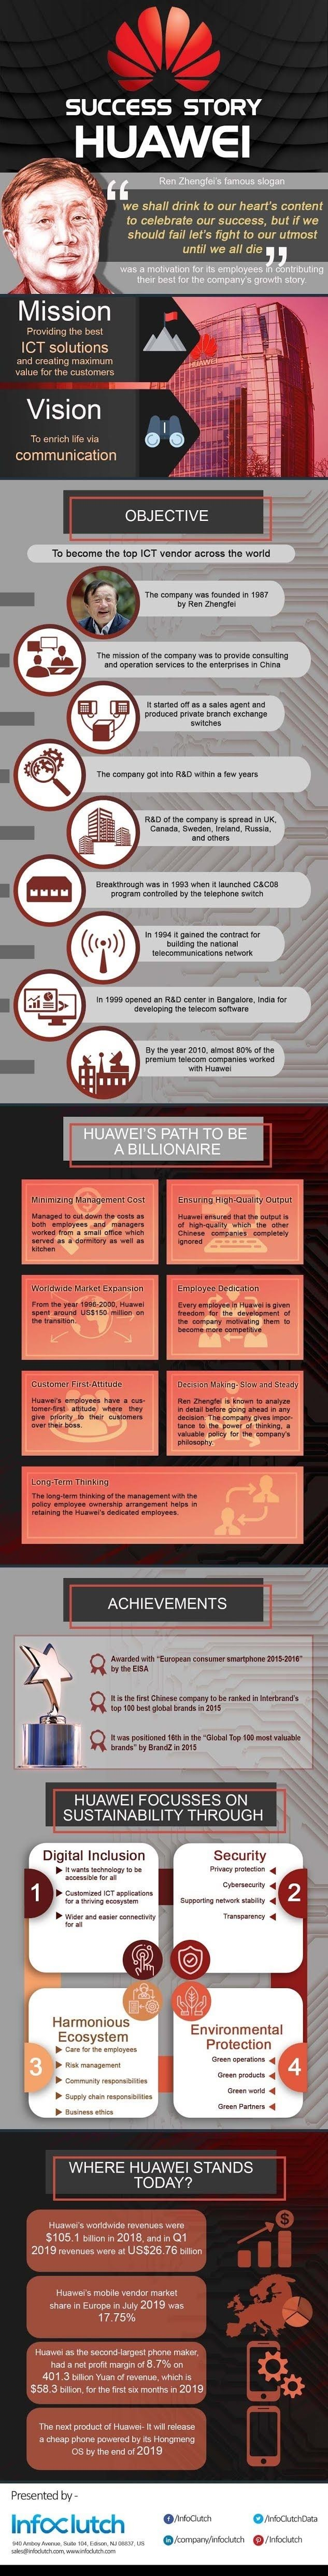 SUCCESS STORY OF HUAWEI #INFOGRAPHIC